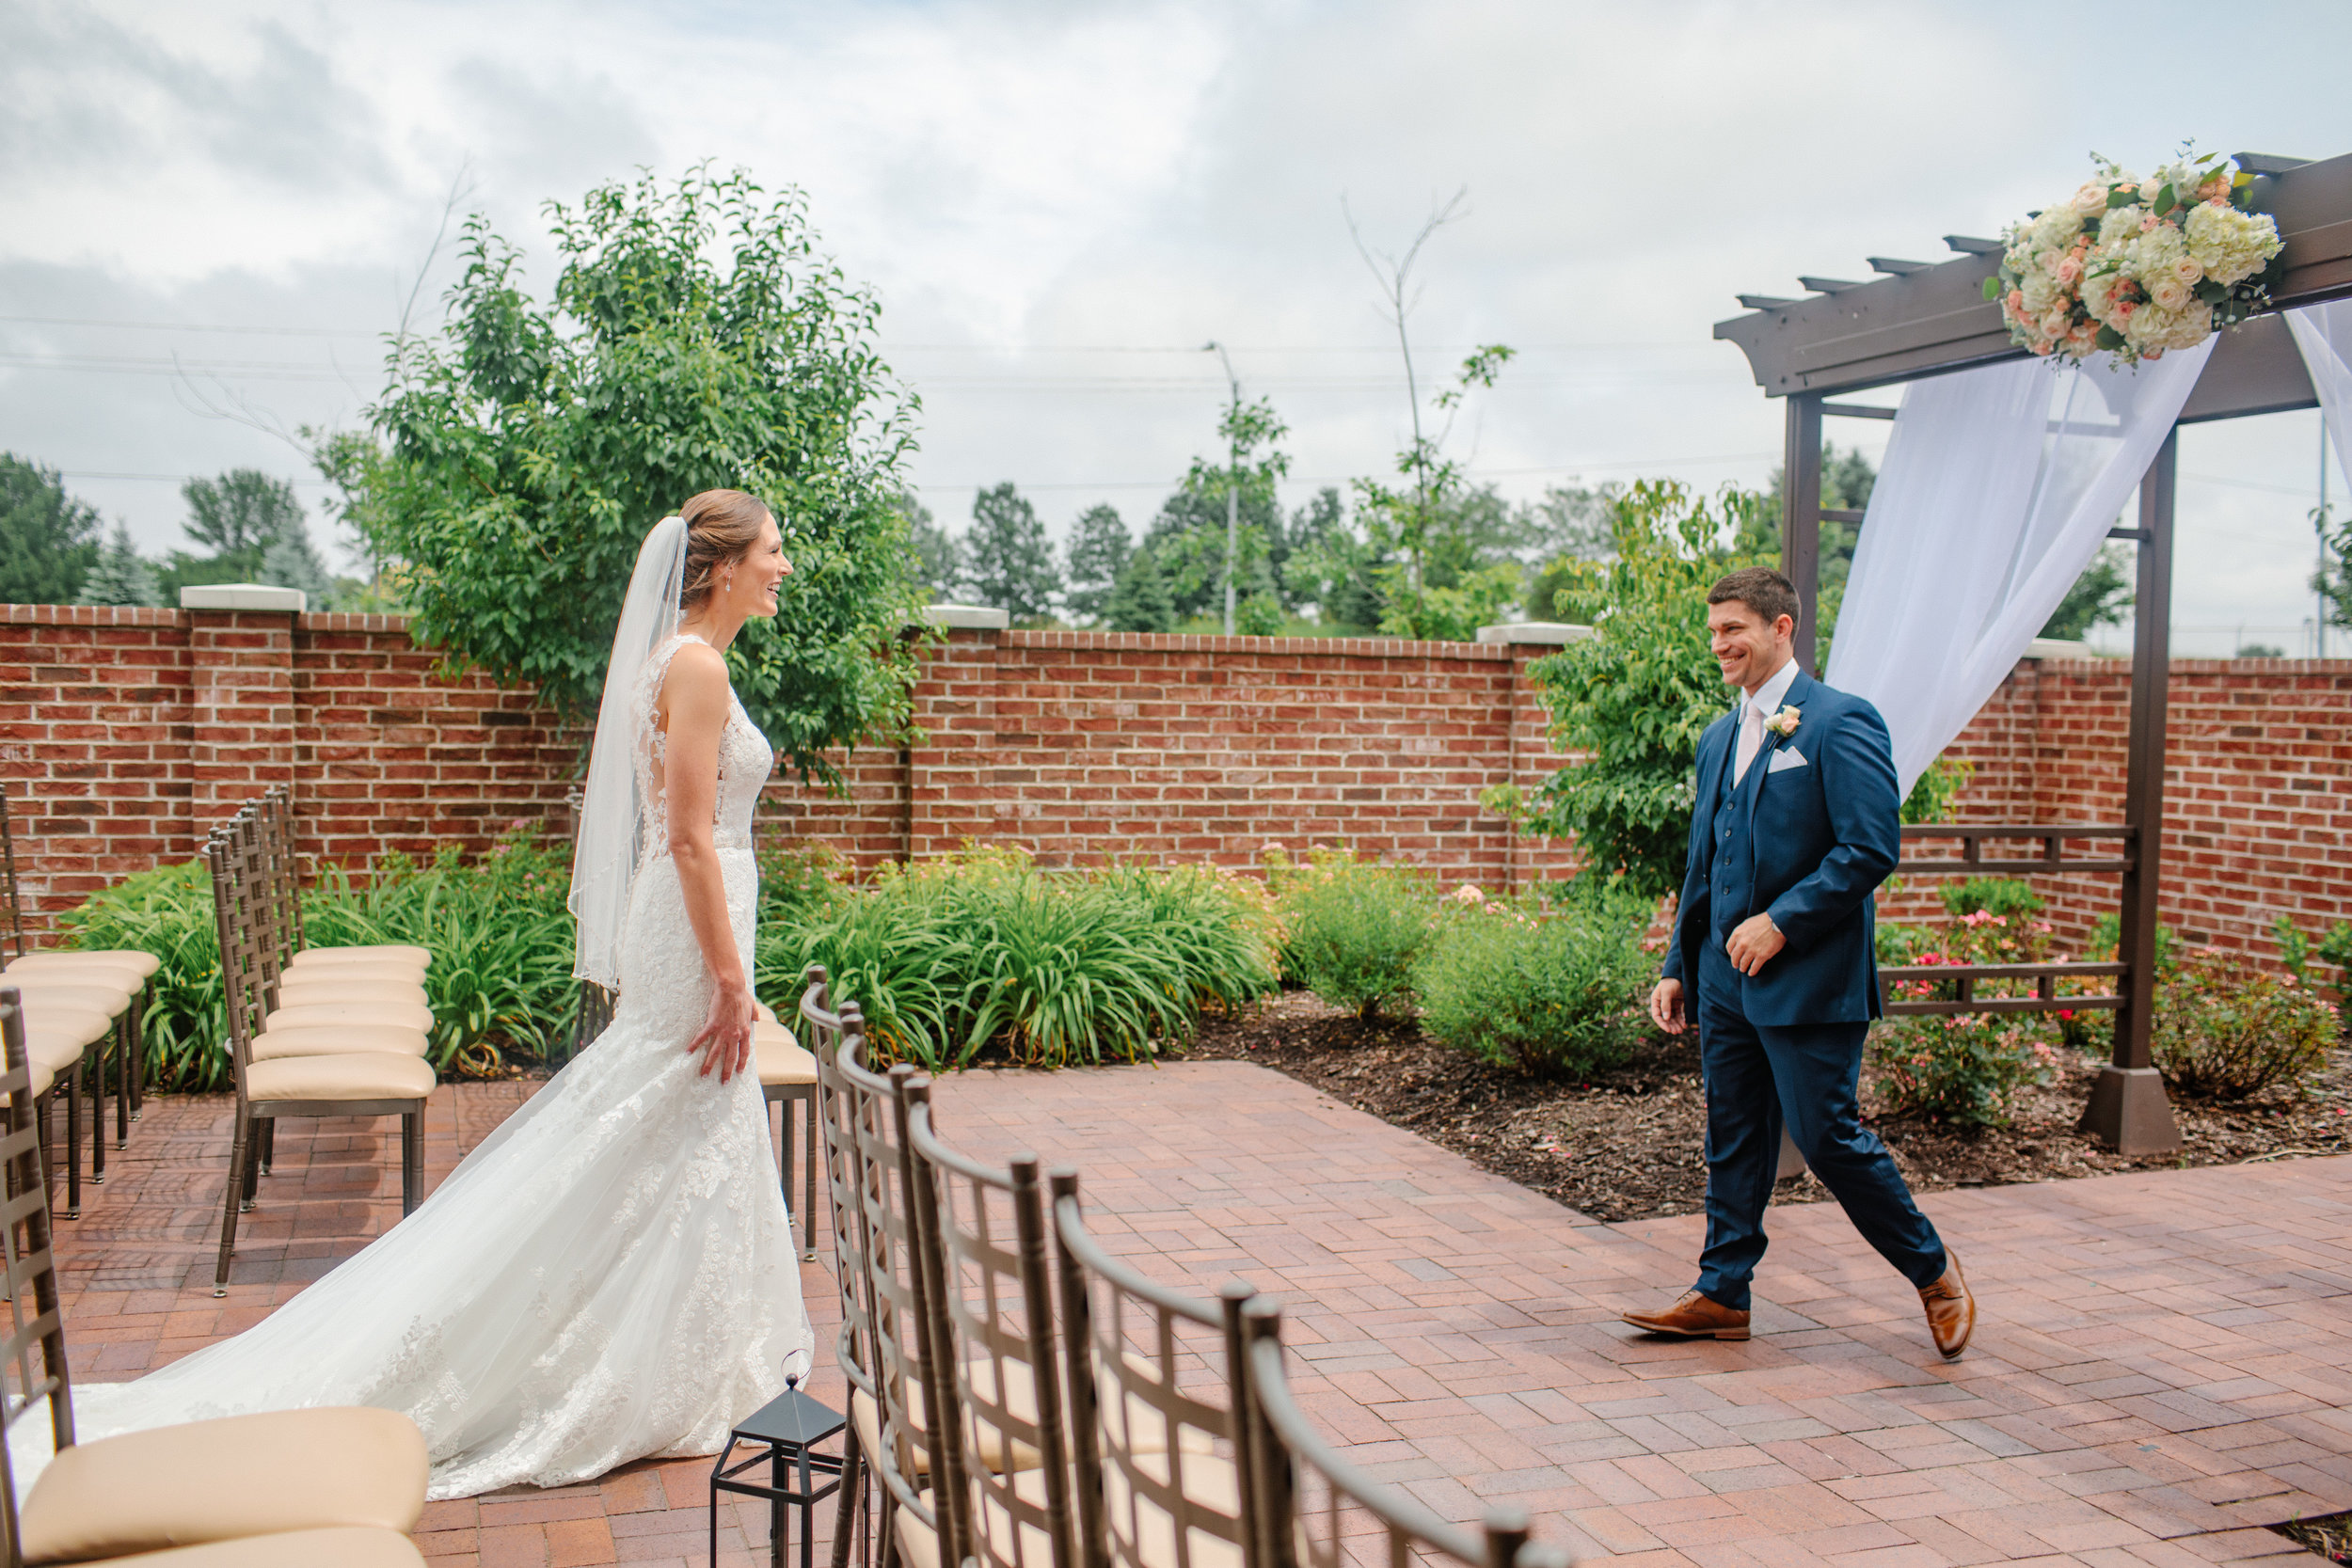 nicole_kyle_west_des_moines_iowa_wedding_photographers_23.jpg